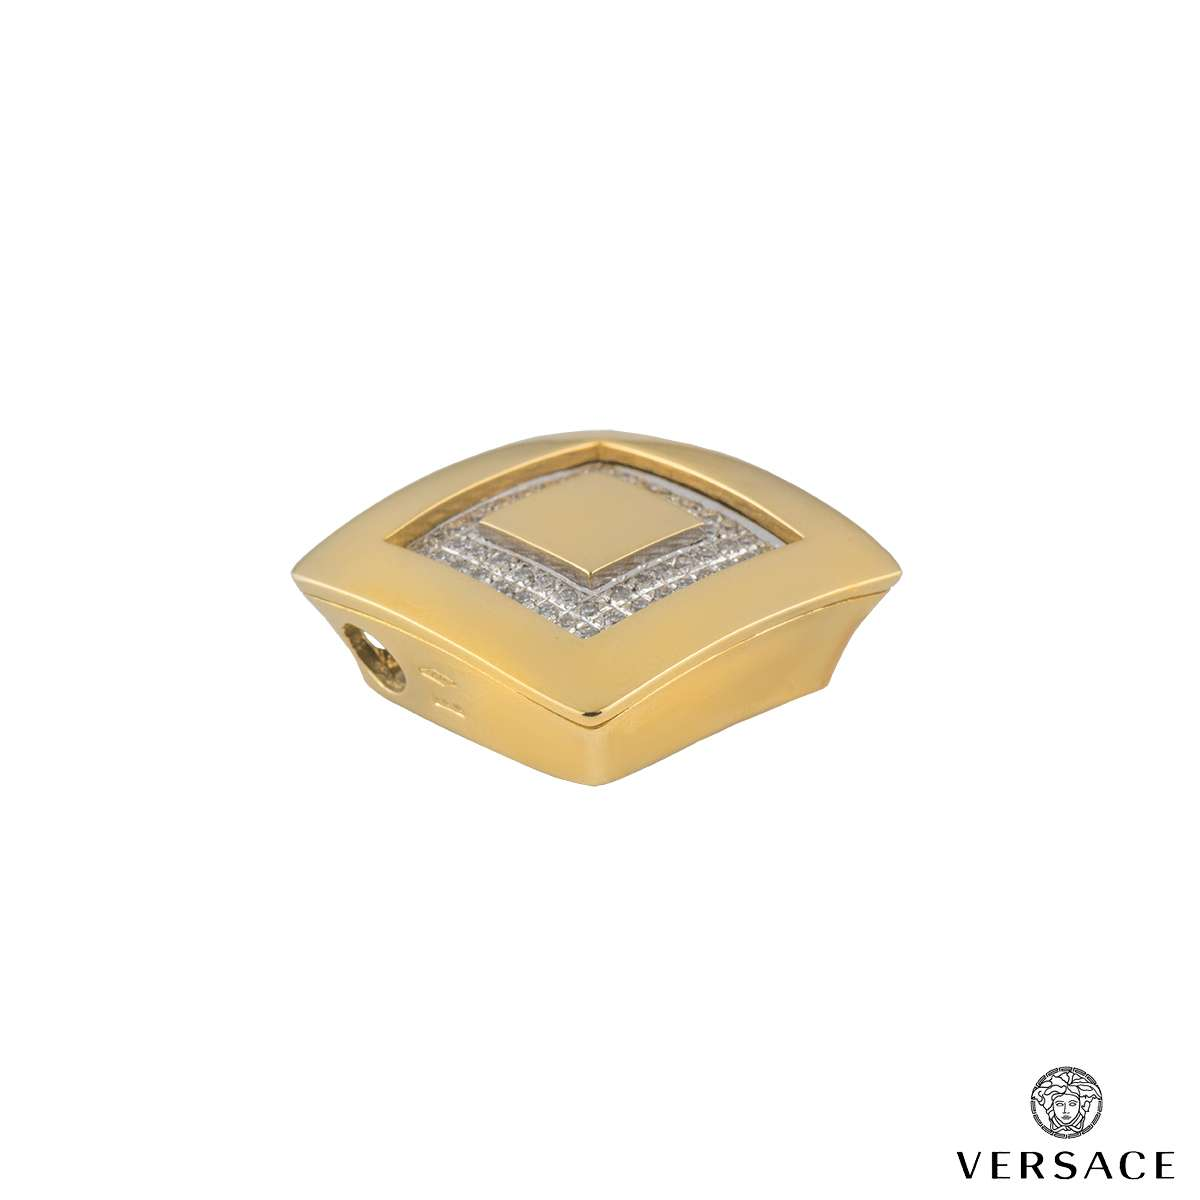 Versace 18k Yellow Gold Matching Pendant and Earrings Suite